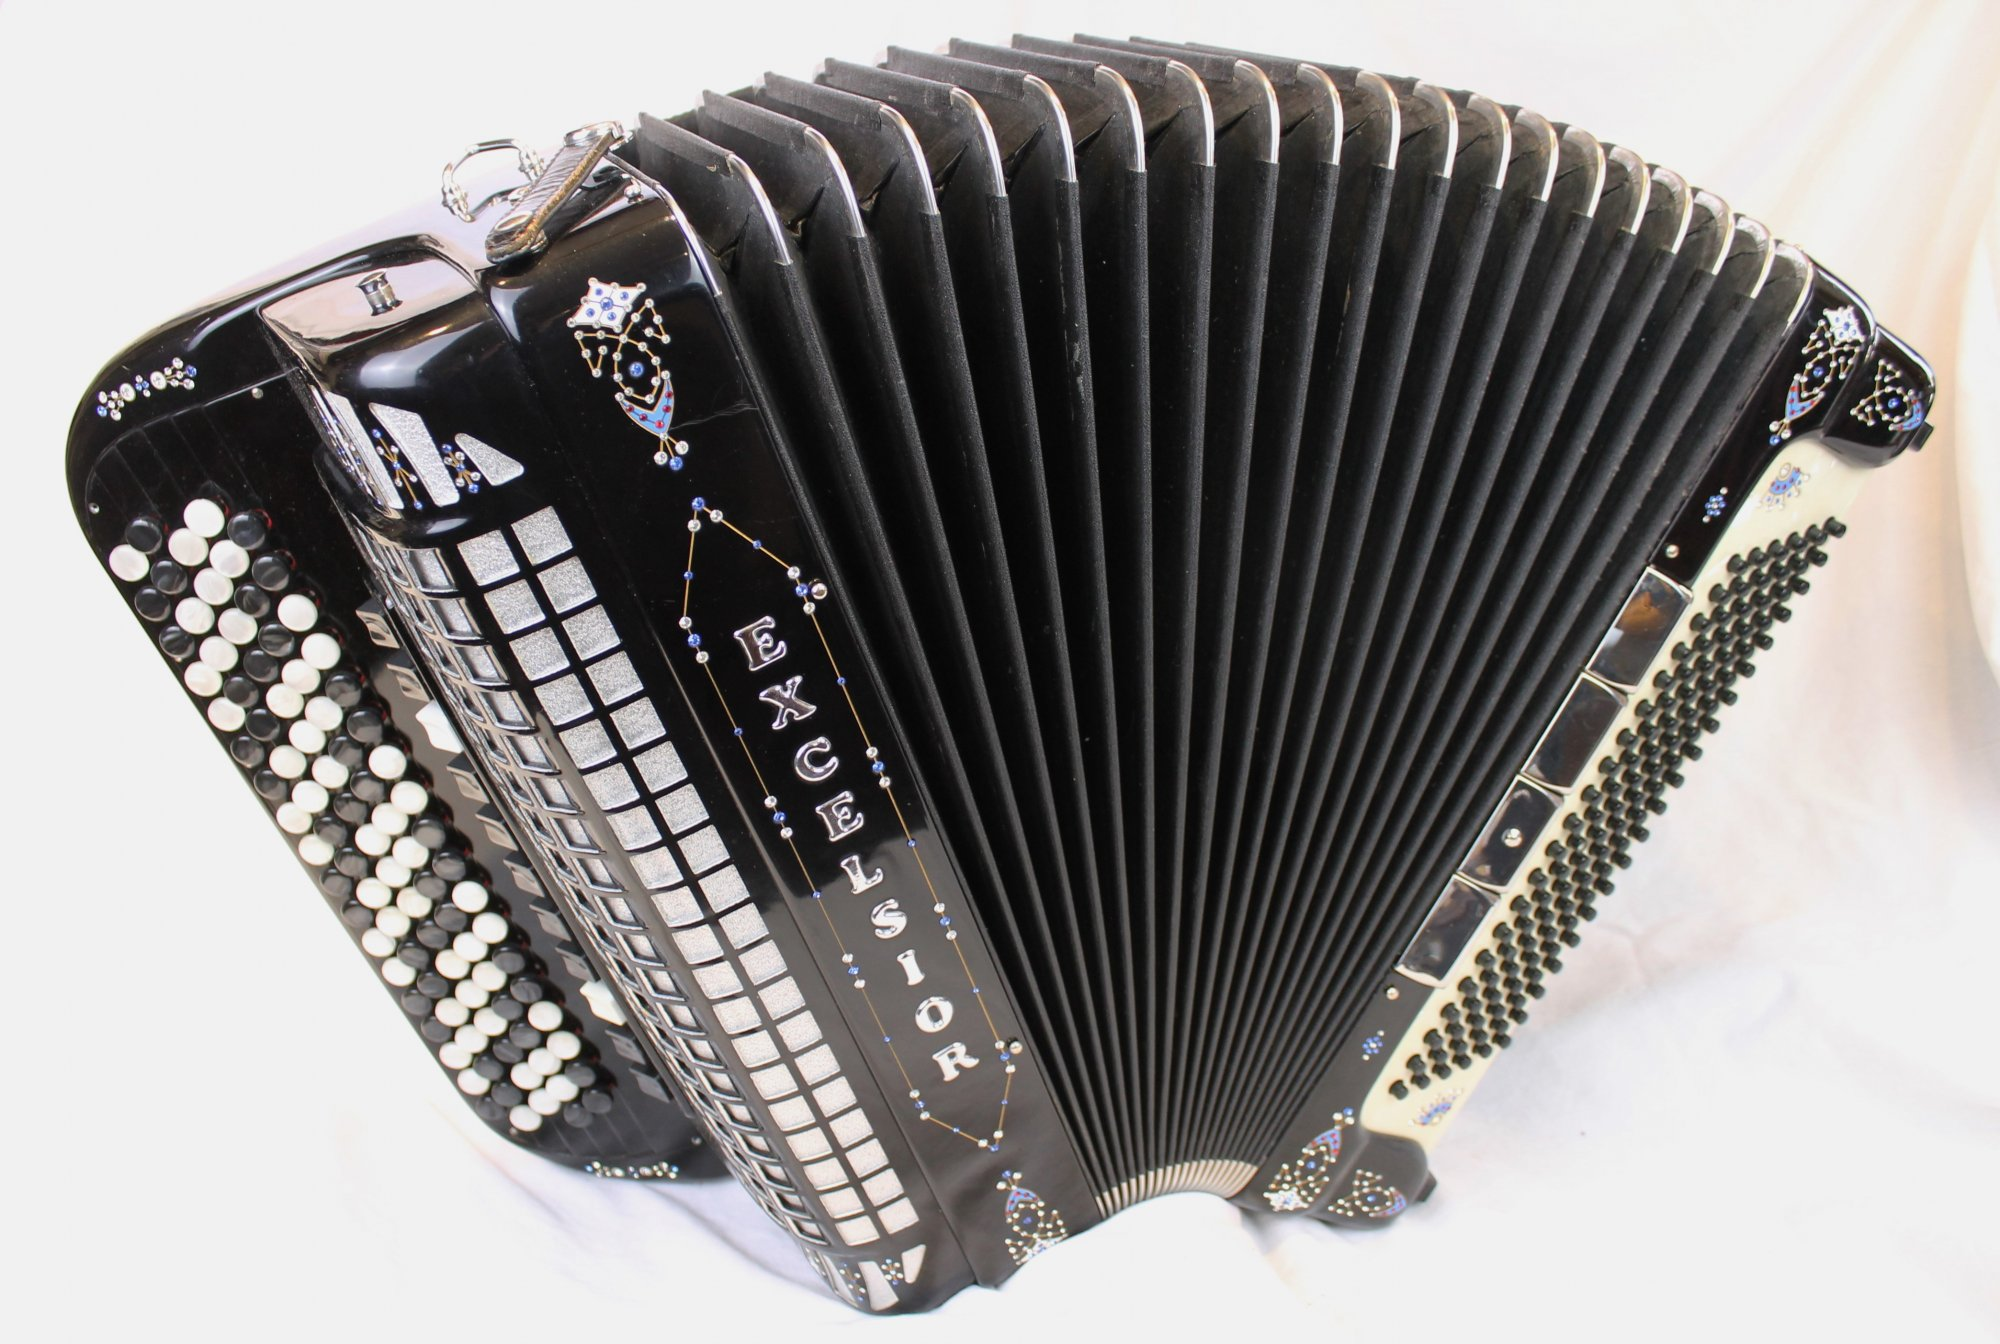 3814 - Black Decorated Excelsior 921 Tone Chamber Chromatic Button Accordion LMMH 92 120